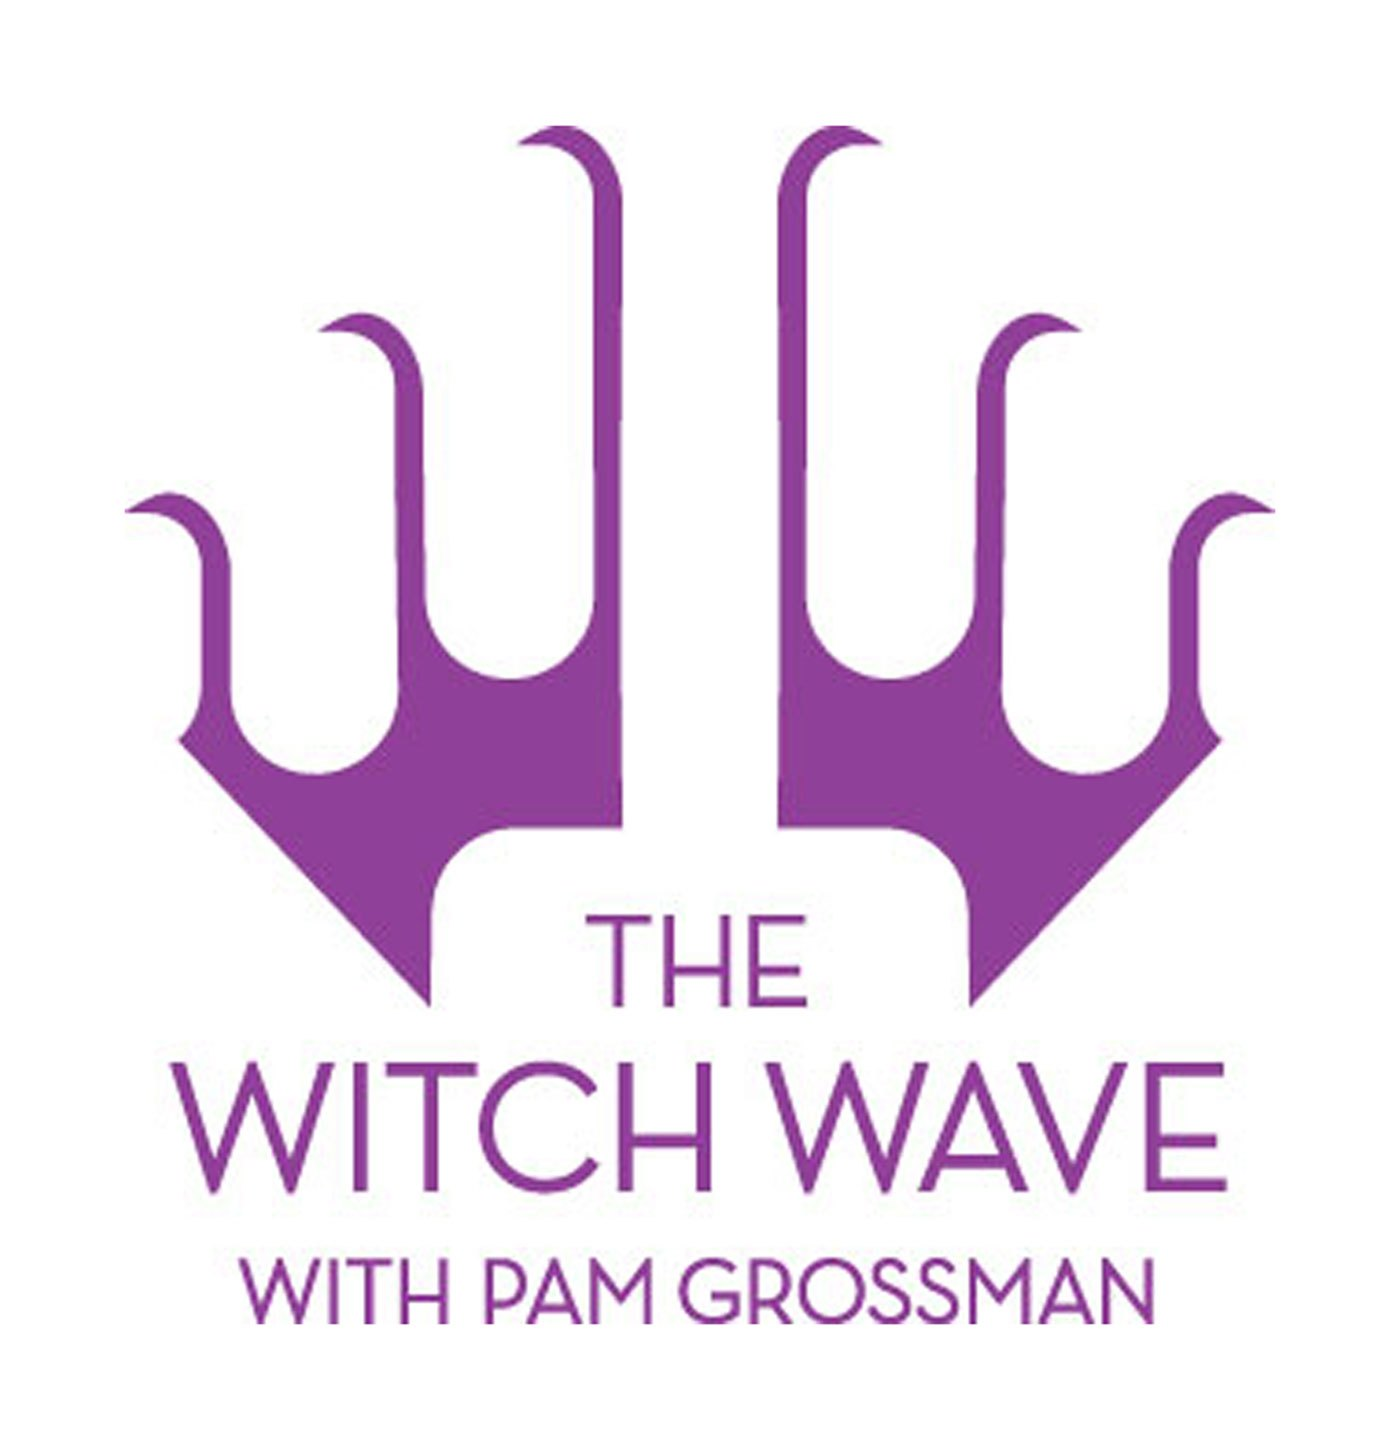 Artwork for The Witch Wave podcast